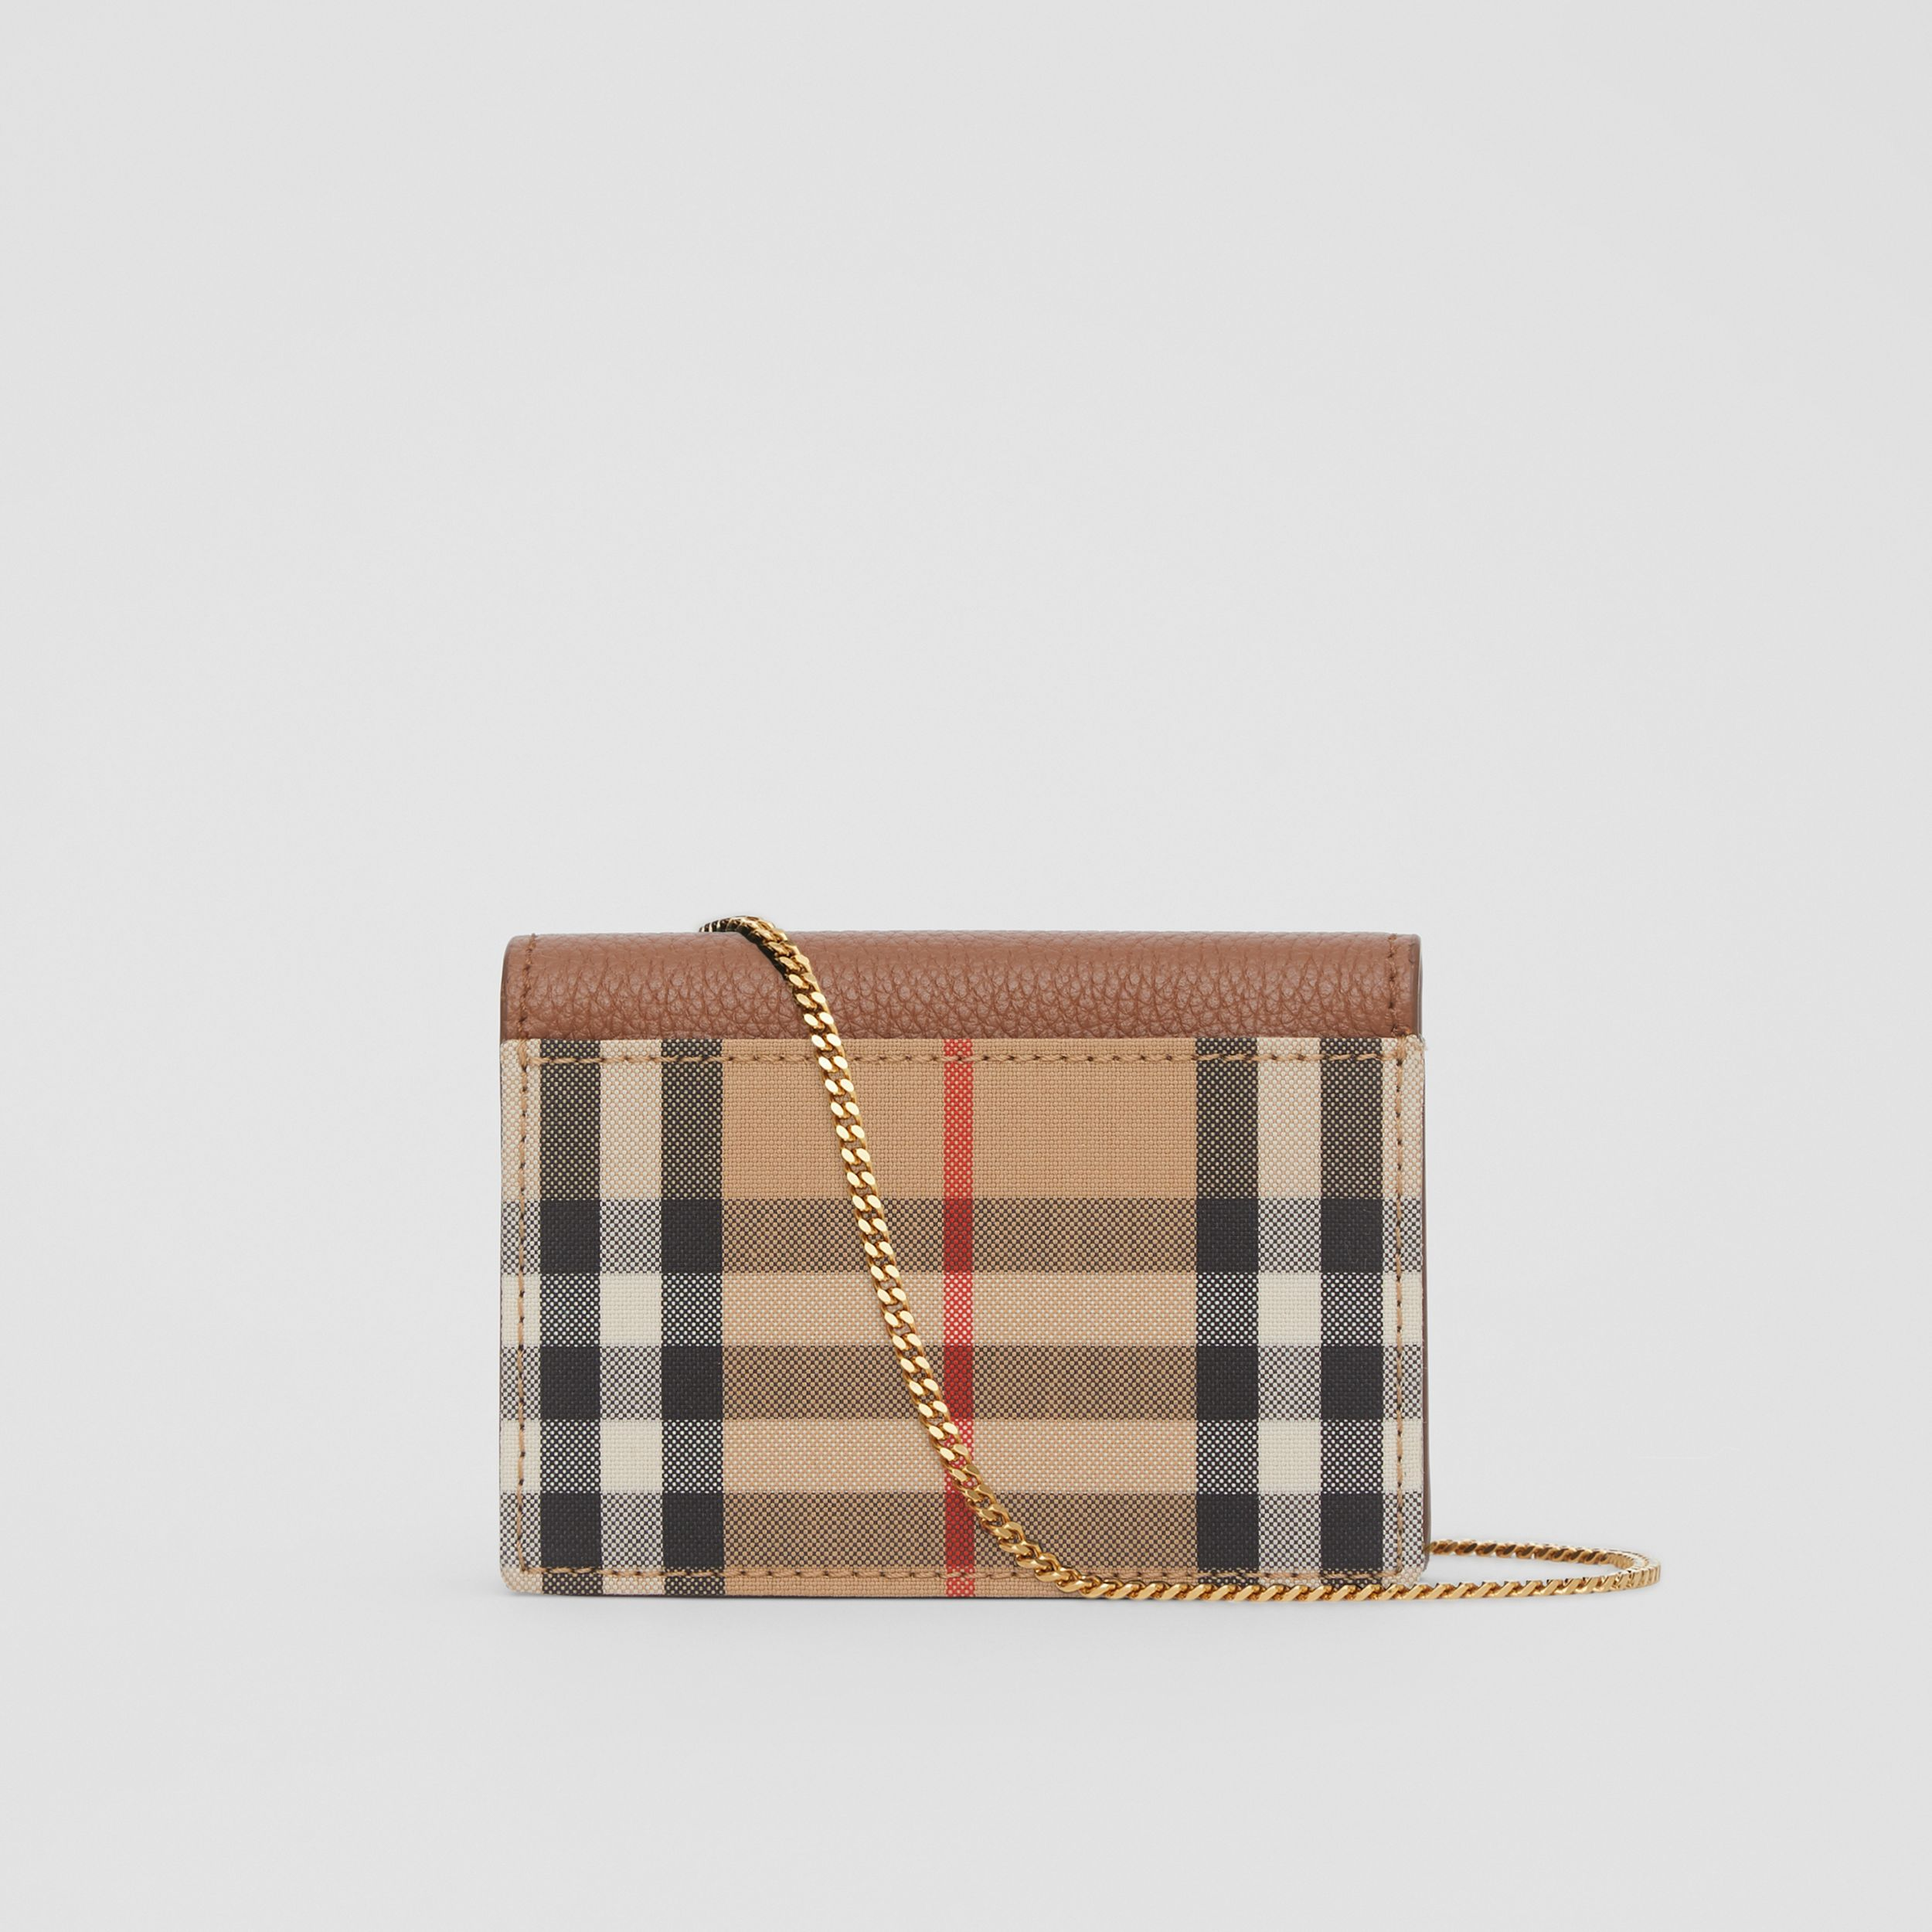 Vintage Check and Leather Card Case with Strap in Tan - Women | Burberry United Kingdom - 4